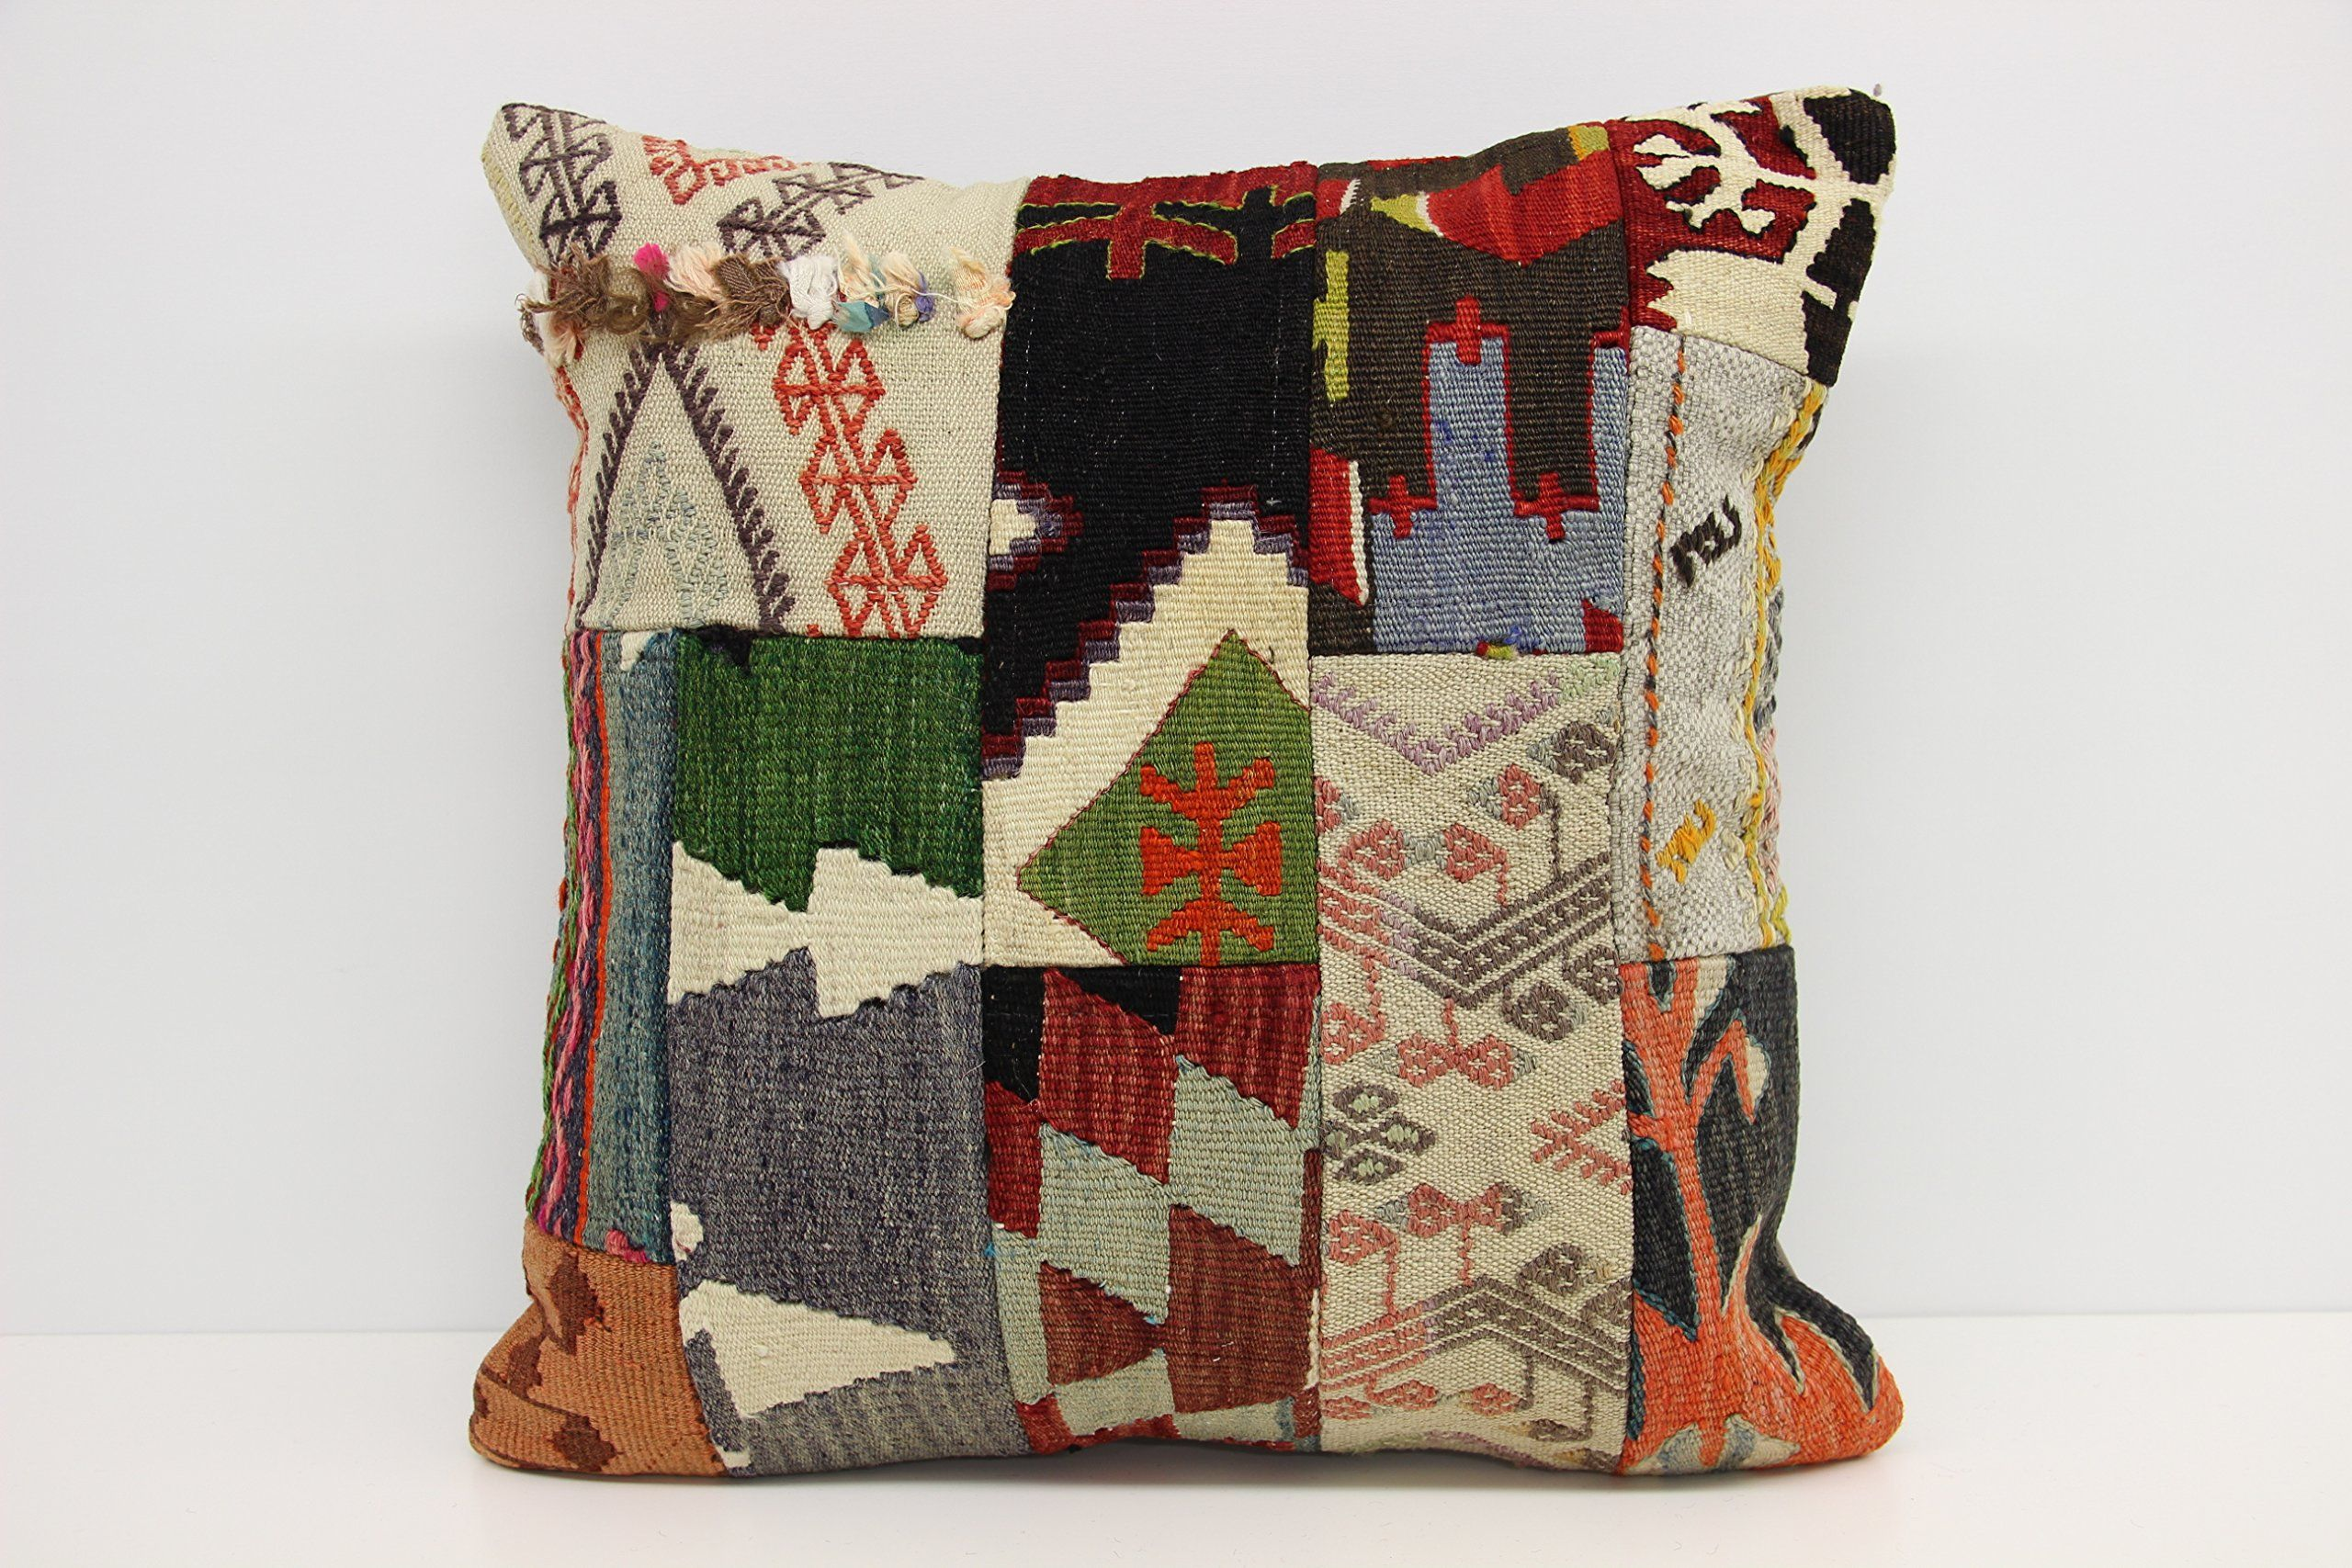 cushion cushions berber pillow en kilim moroccan